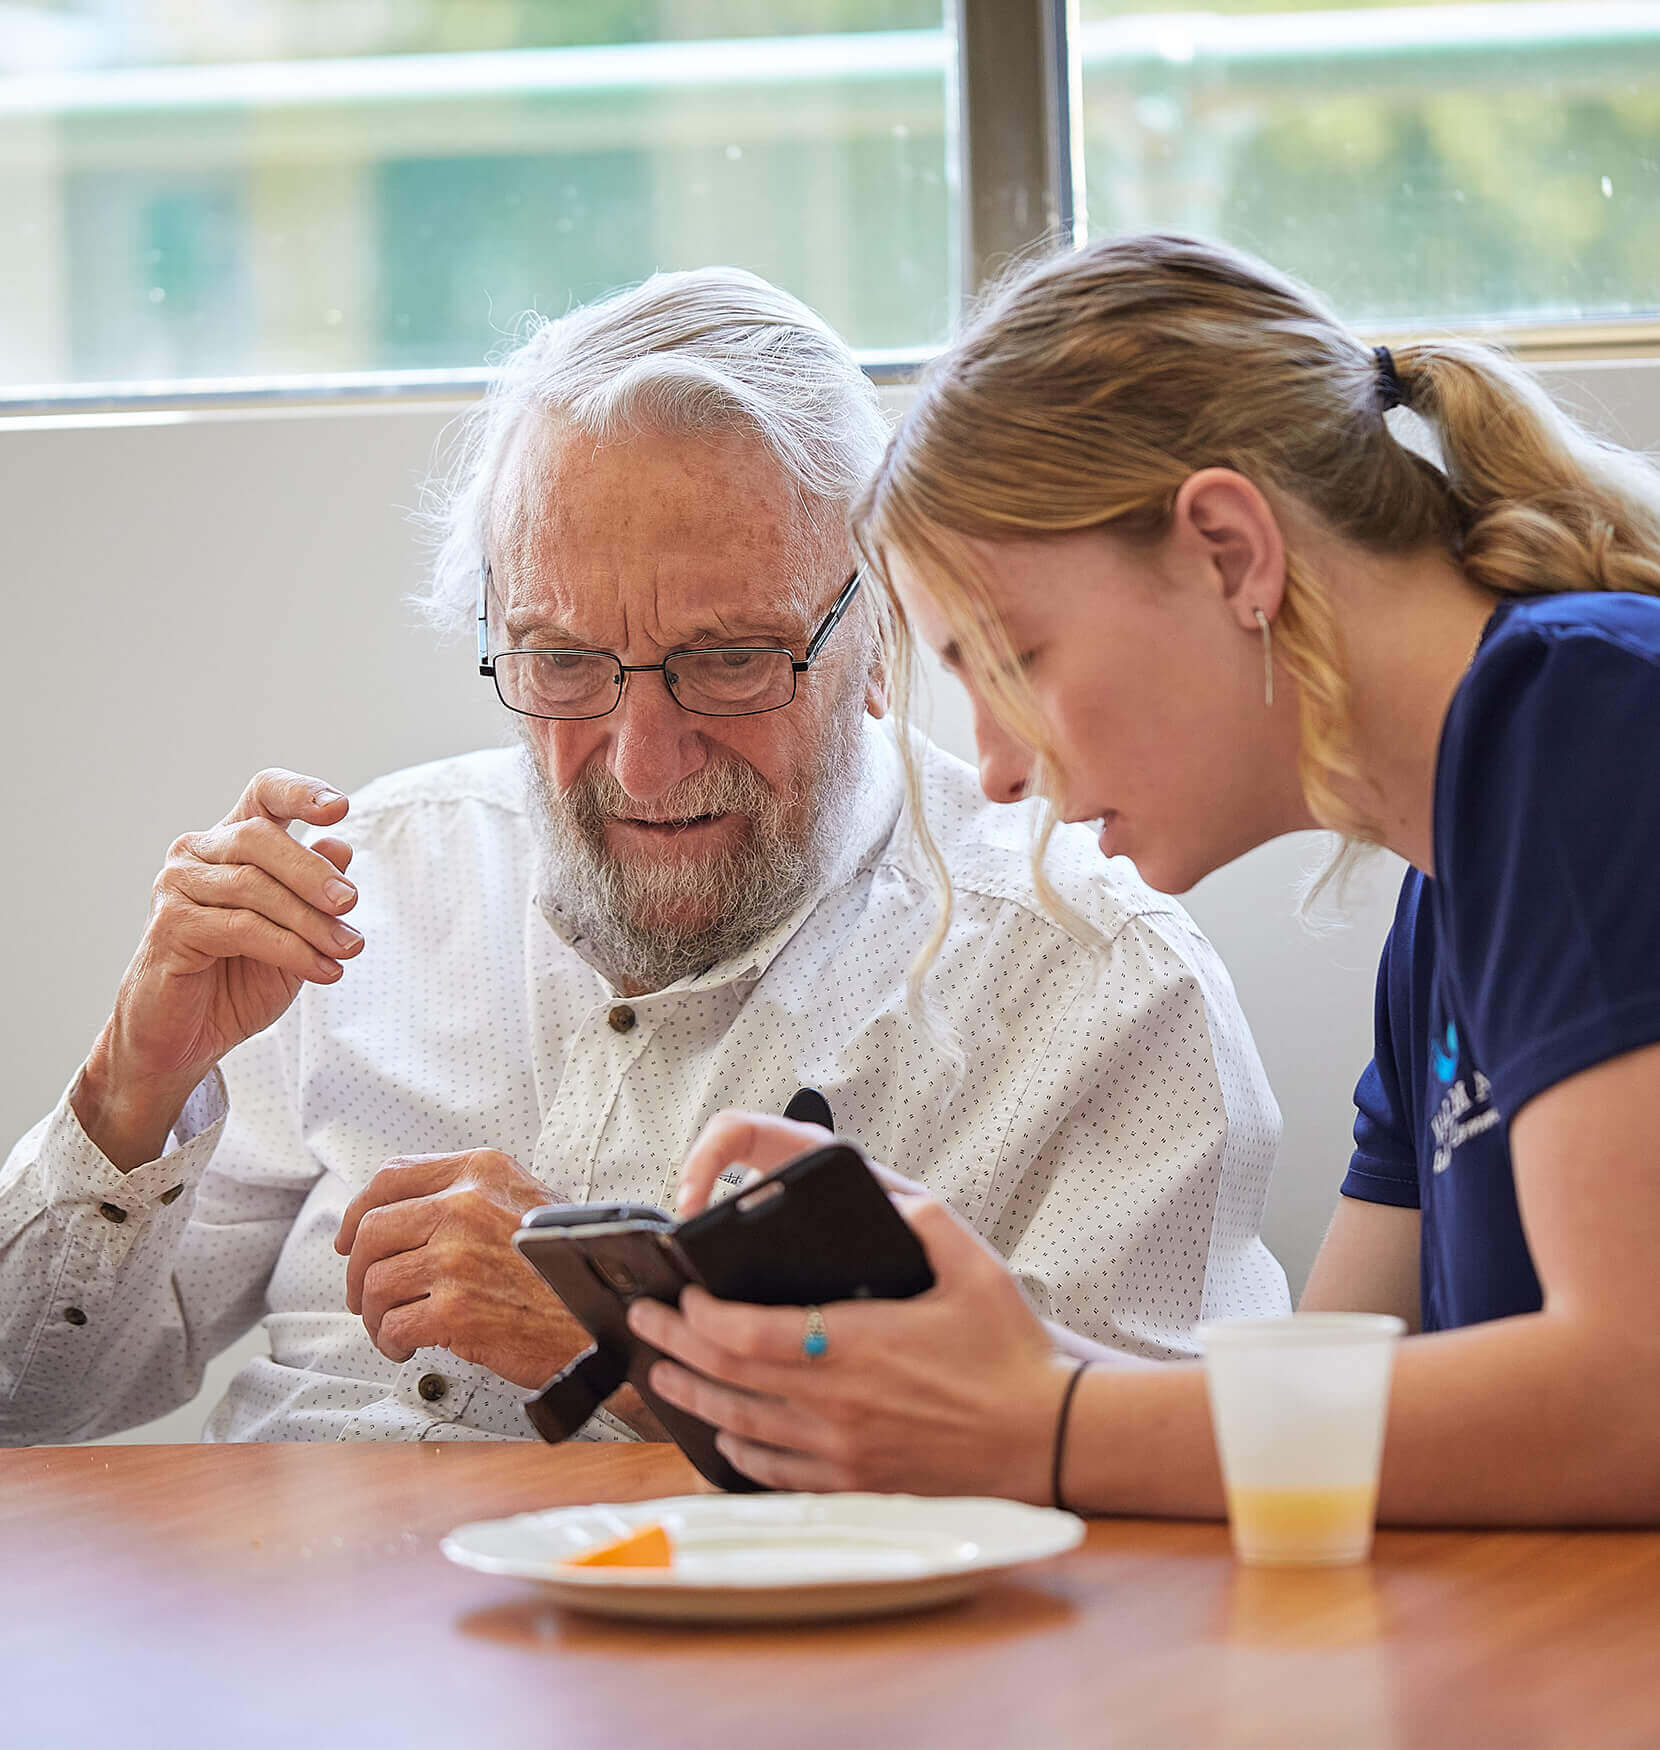 A female Valmar Support Services worker assisting an elderly gentleman with a smartphone. They are sitting at a table with an empty plate and a half drunk cup of orange juice.